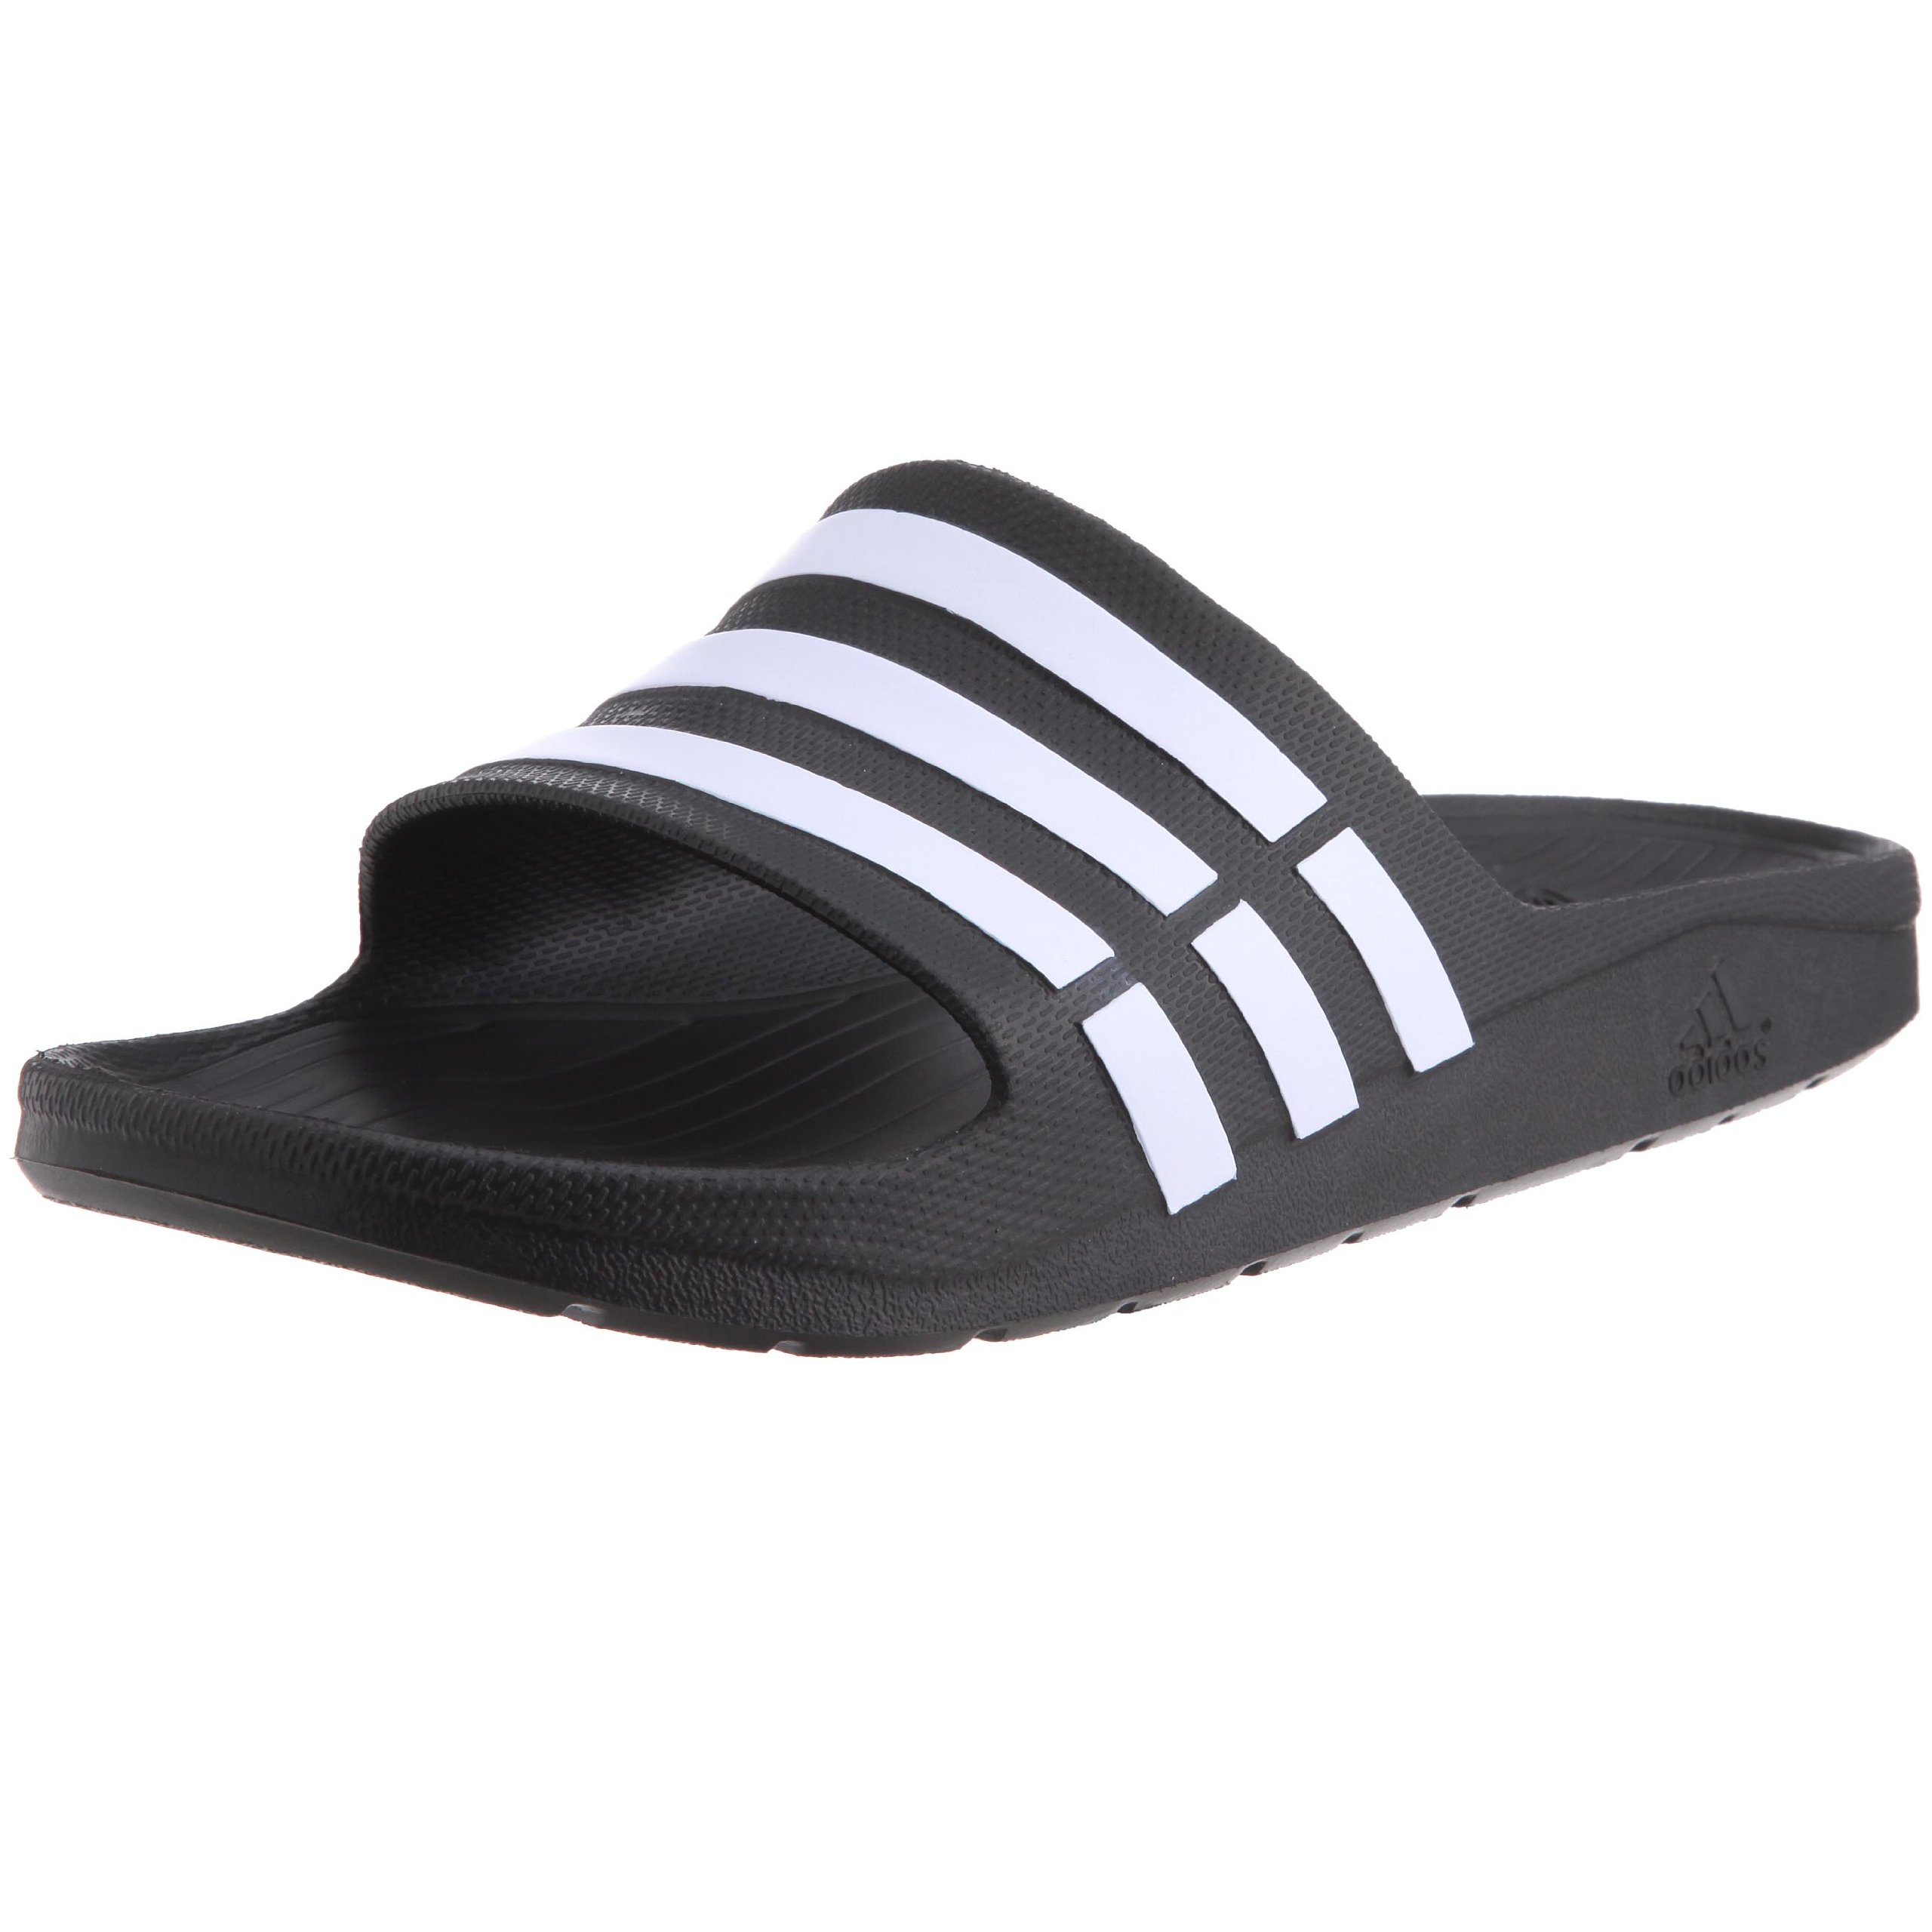 f09eec877880 Best Rated in Men s Pool Shoes   Helpful Customer Reviews - Amazon.co.uk